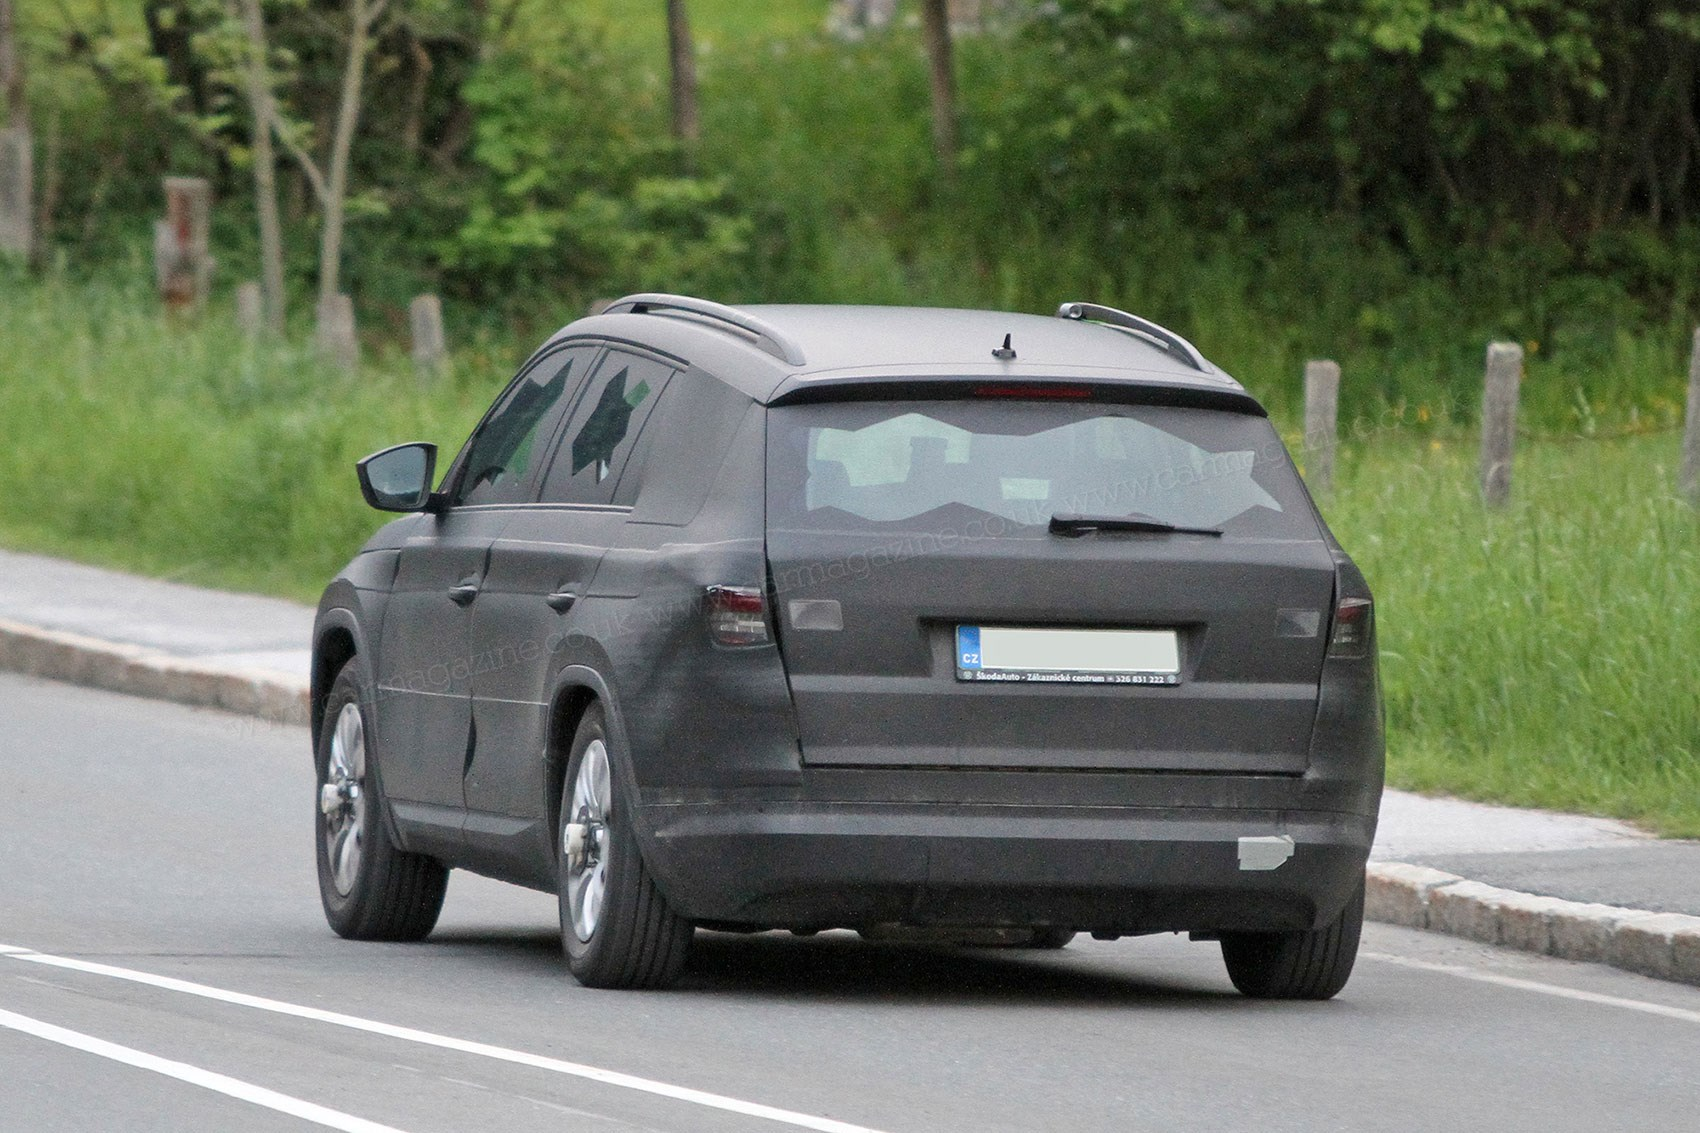 skoda kodiaq suv stretches czechs into crossover space by car magazine. Black Bedroom Furniture Sets. Home Design Ideas